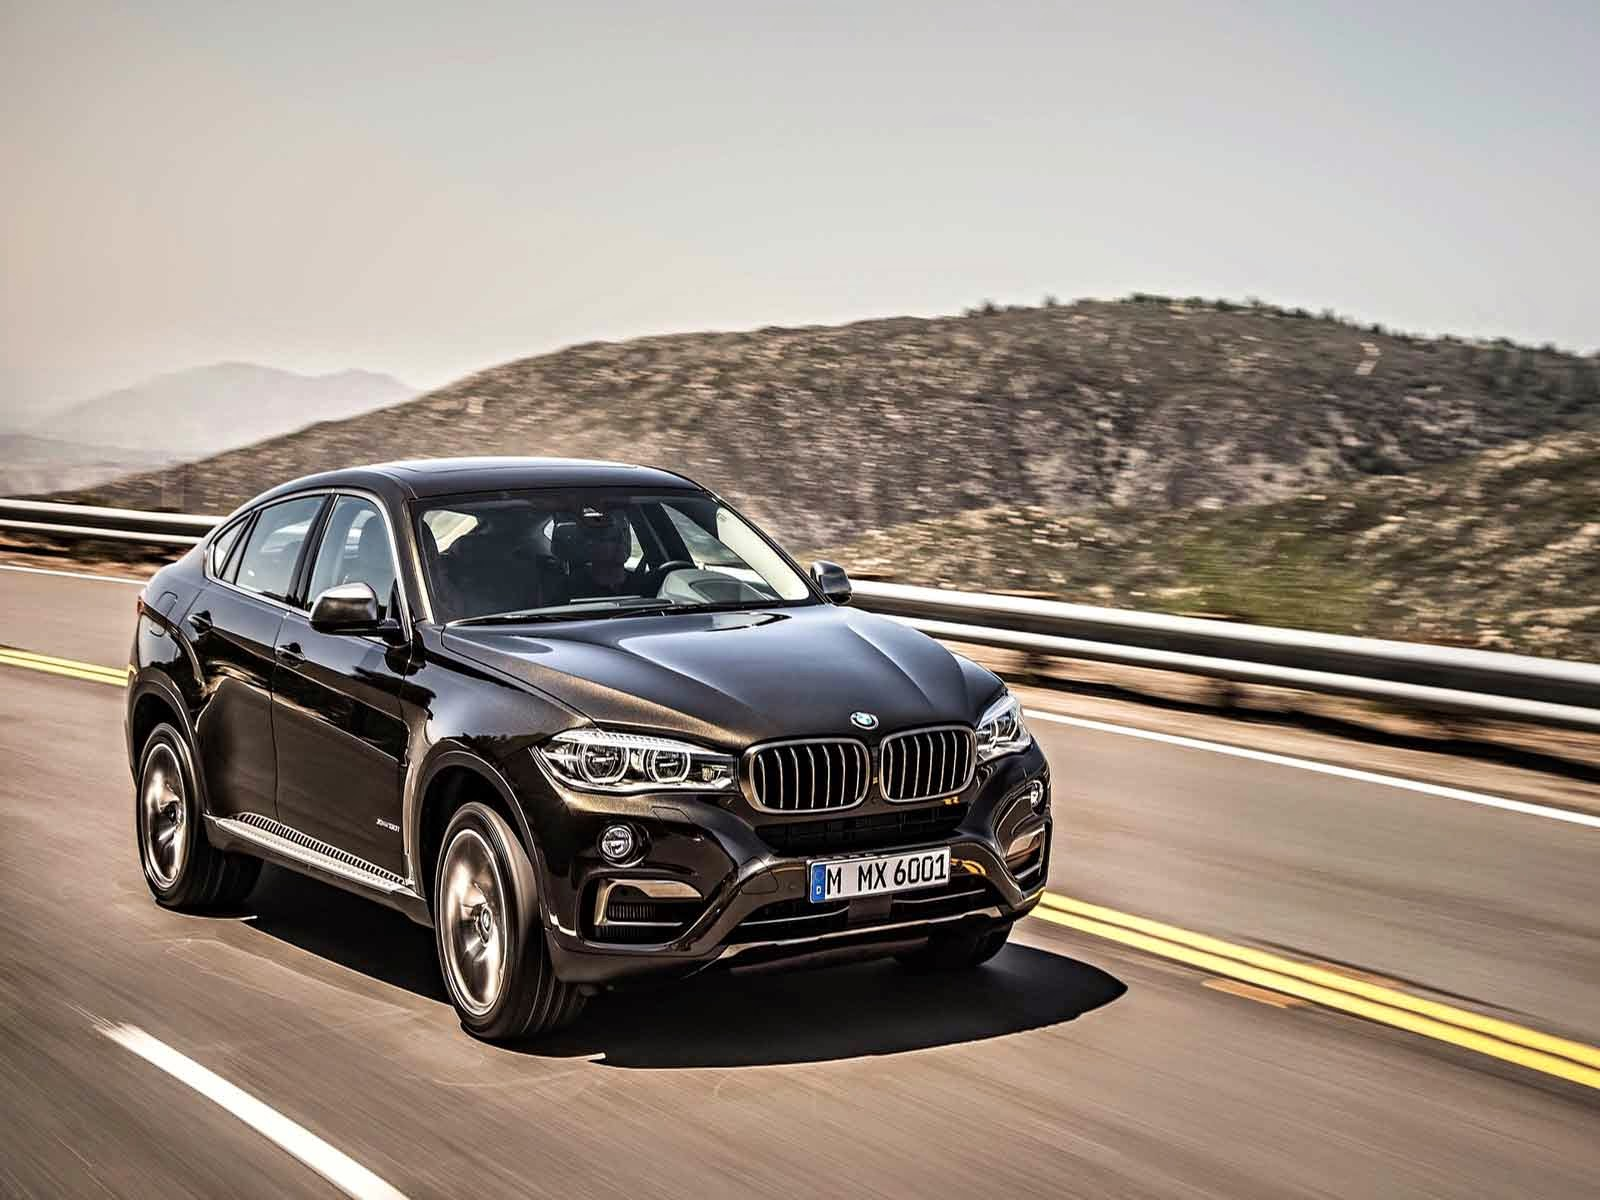 BMW X6 HD Image